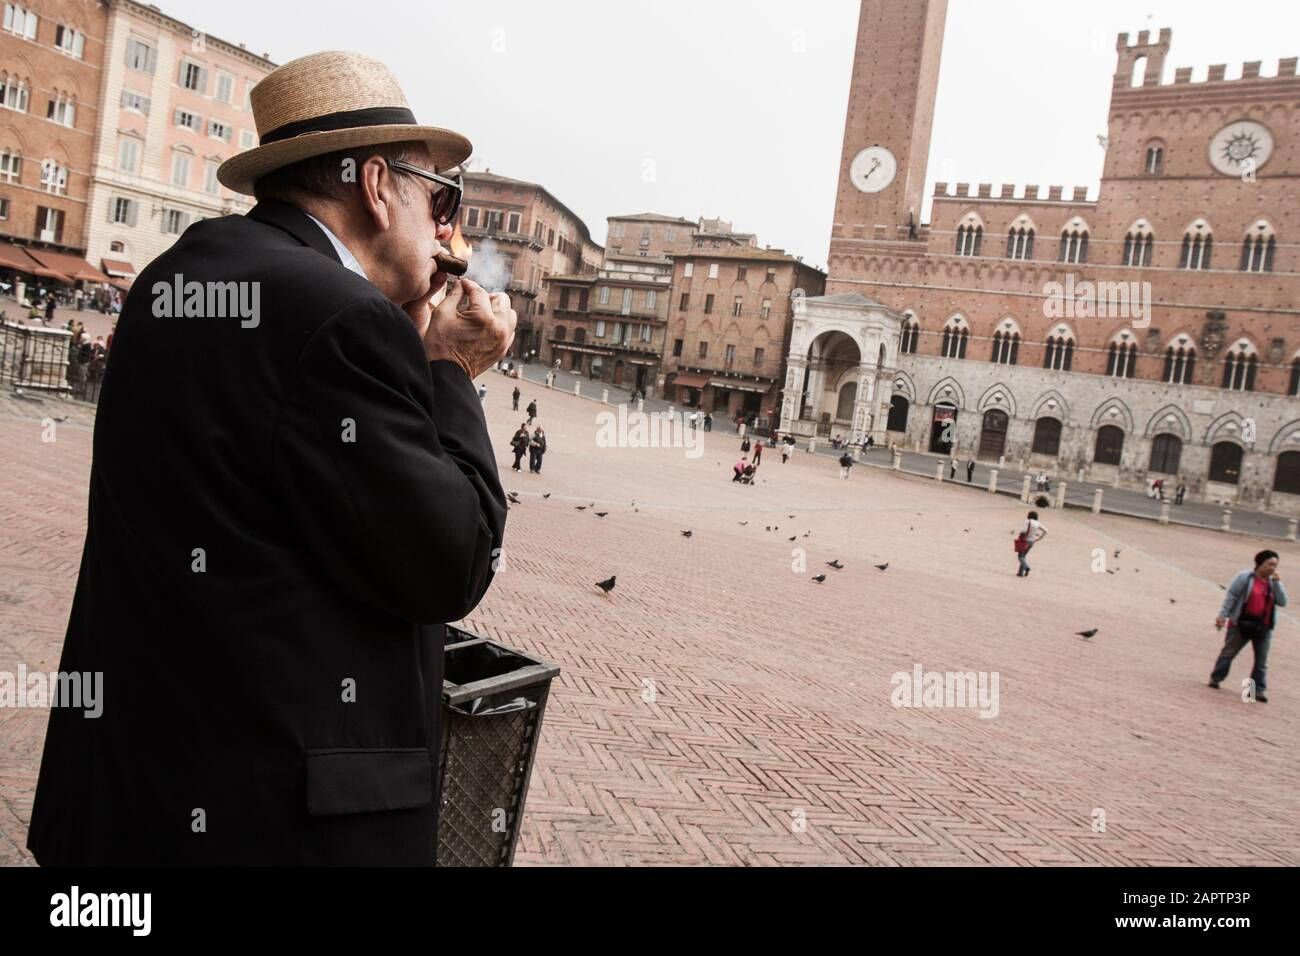 Siena, Italy, October 27, 2008: A man lights a cigar in the Piazza del Campo in Siena, Italy. Stock Photo